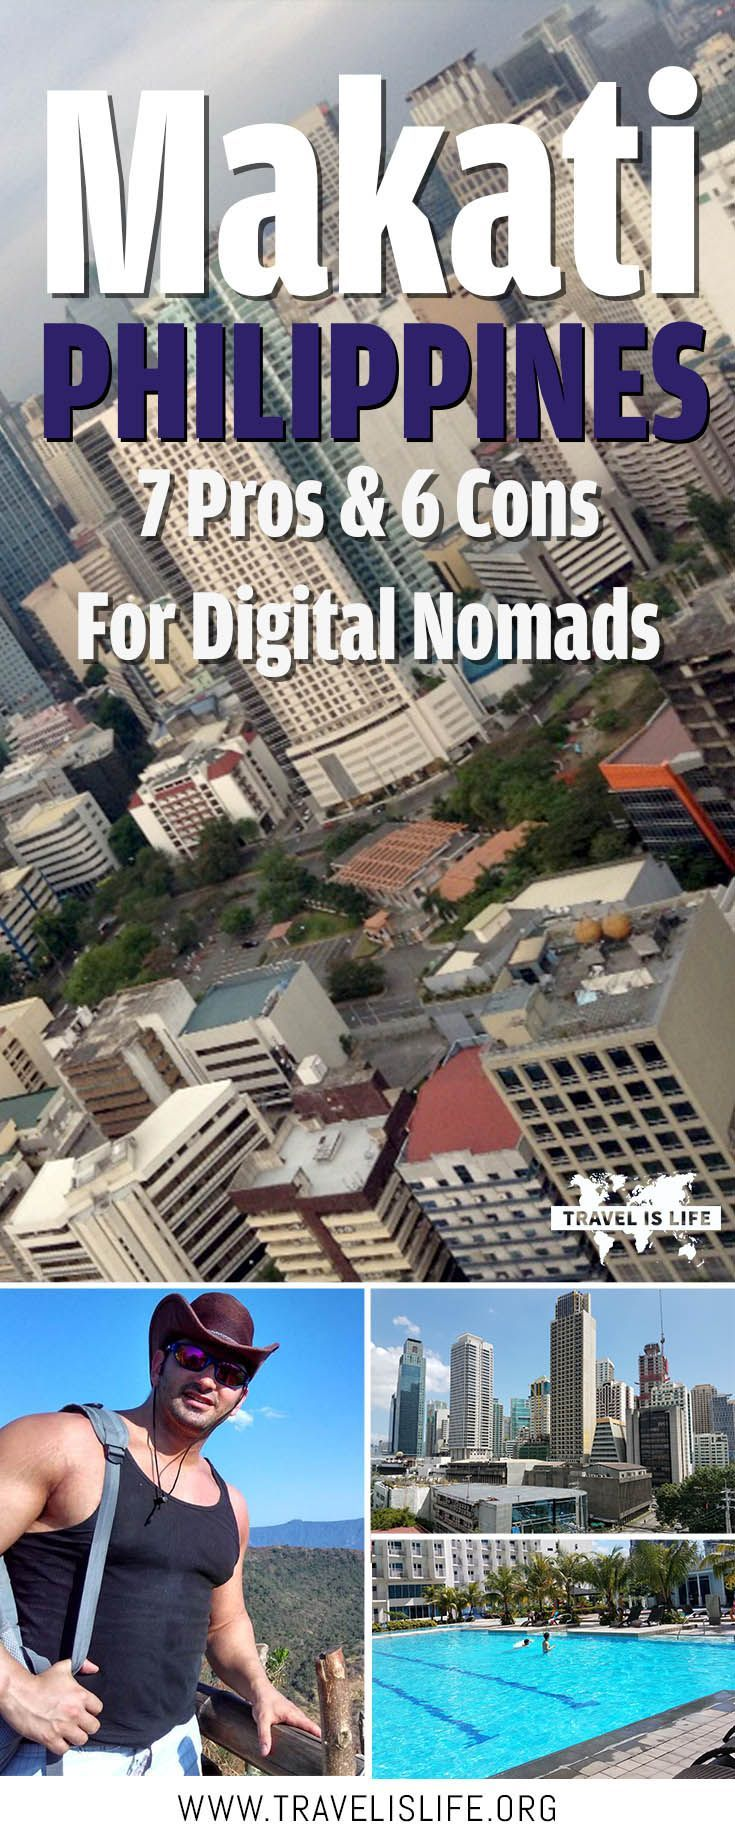 What's it like to live in Makati Manila Philippines as a digital nomad? Jon Santangelo discusses the pros and cons of life in Manila's business district. Brought to you by TravelisLife.org. #makatiphilippines #philippines #ph #makati #manila #manilaphilippines